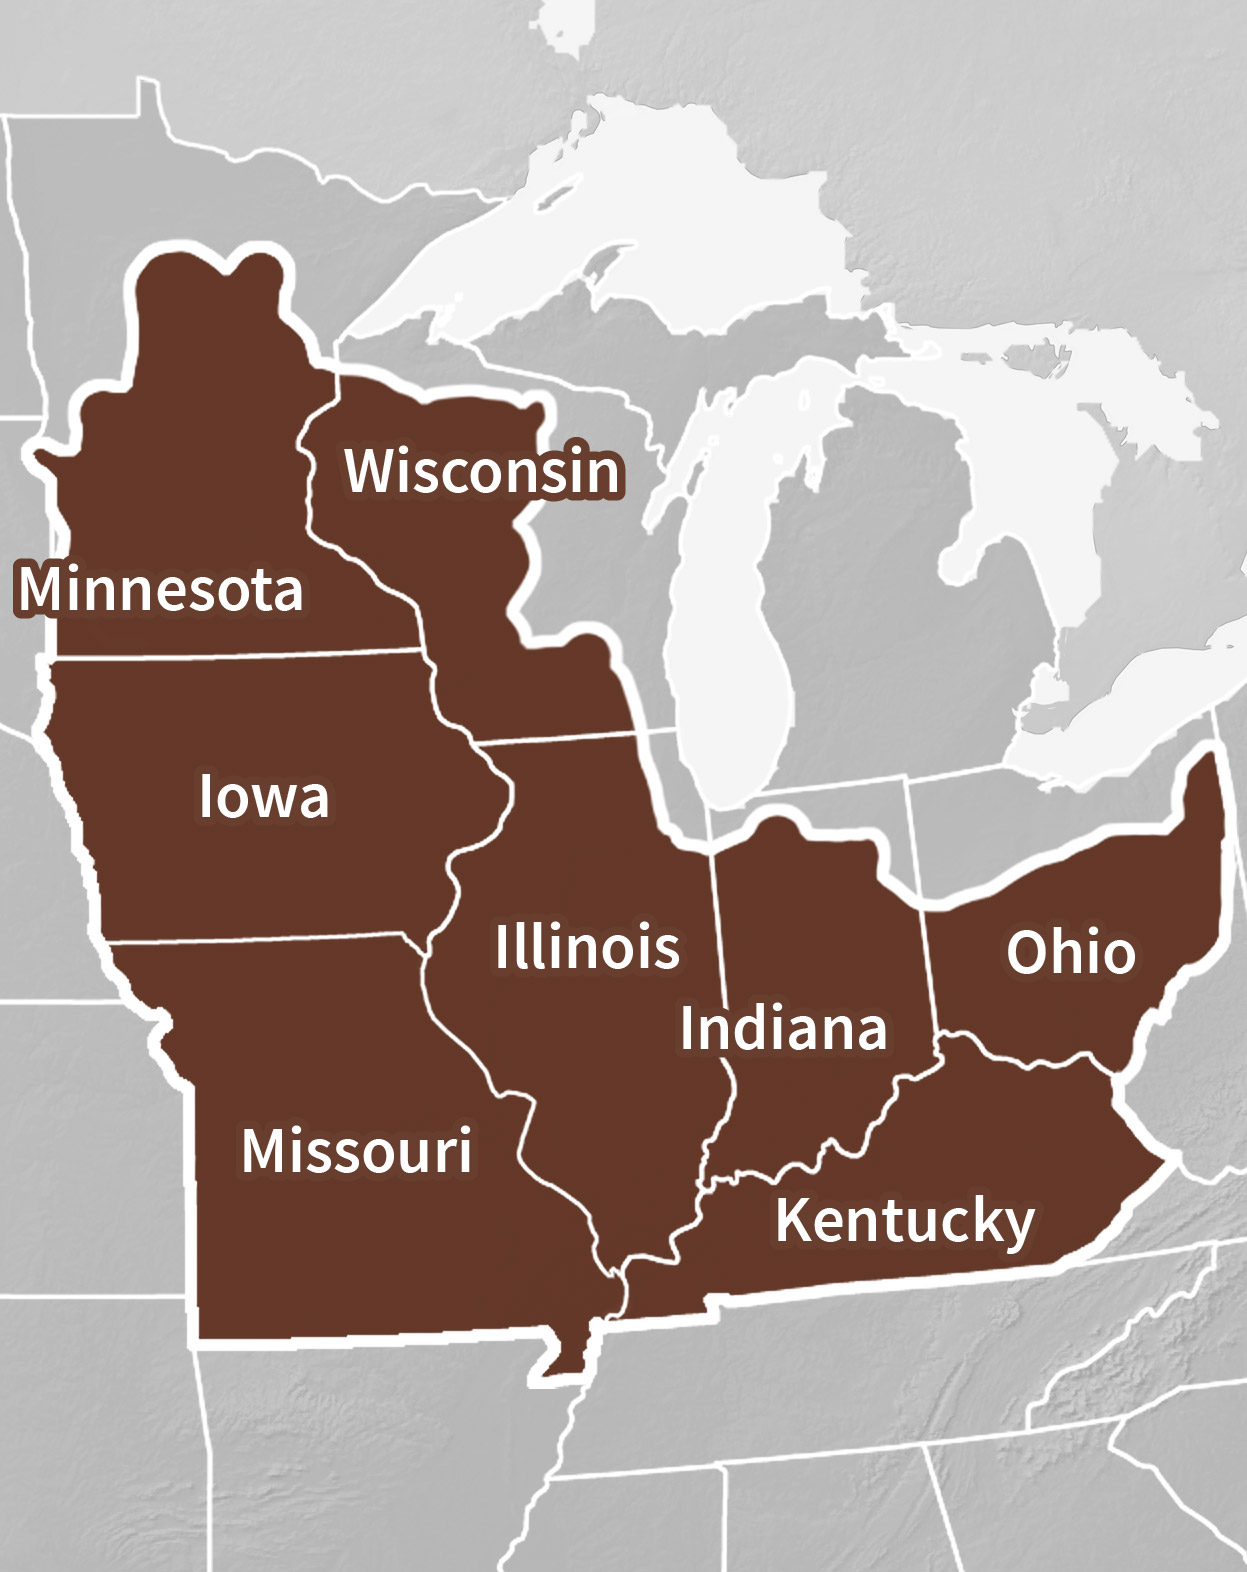 Midwest DEWS region map with individual states highlighted: Illinois, Indiana, Iowa, Kentucky, Minnesota, Missouri, Ohio, and Wisconsin.